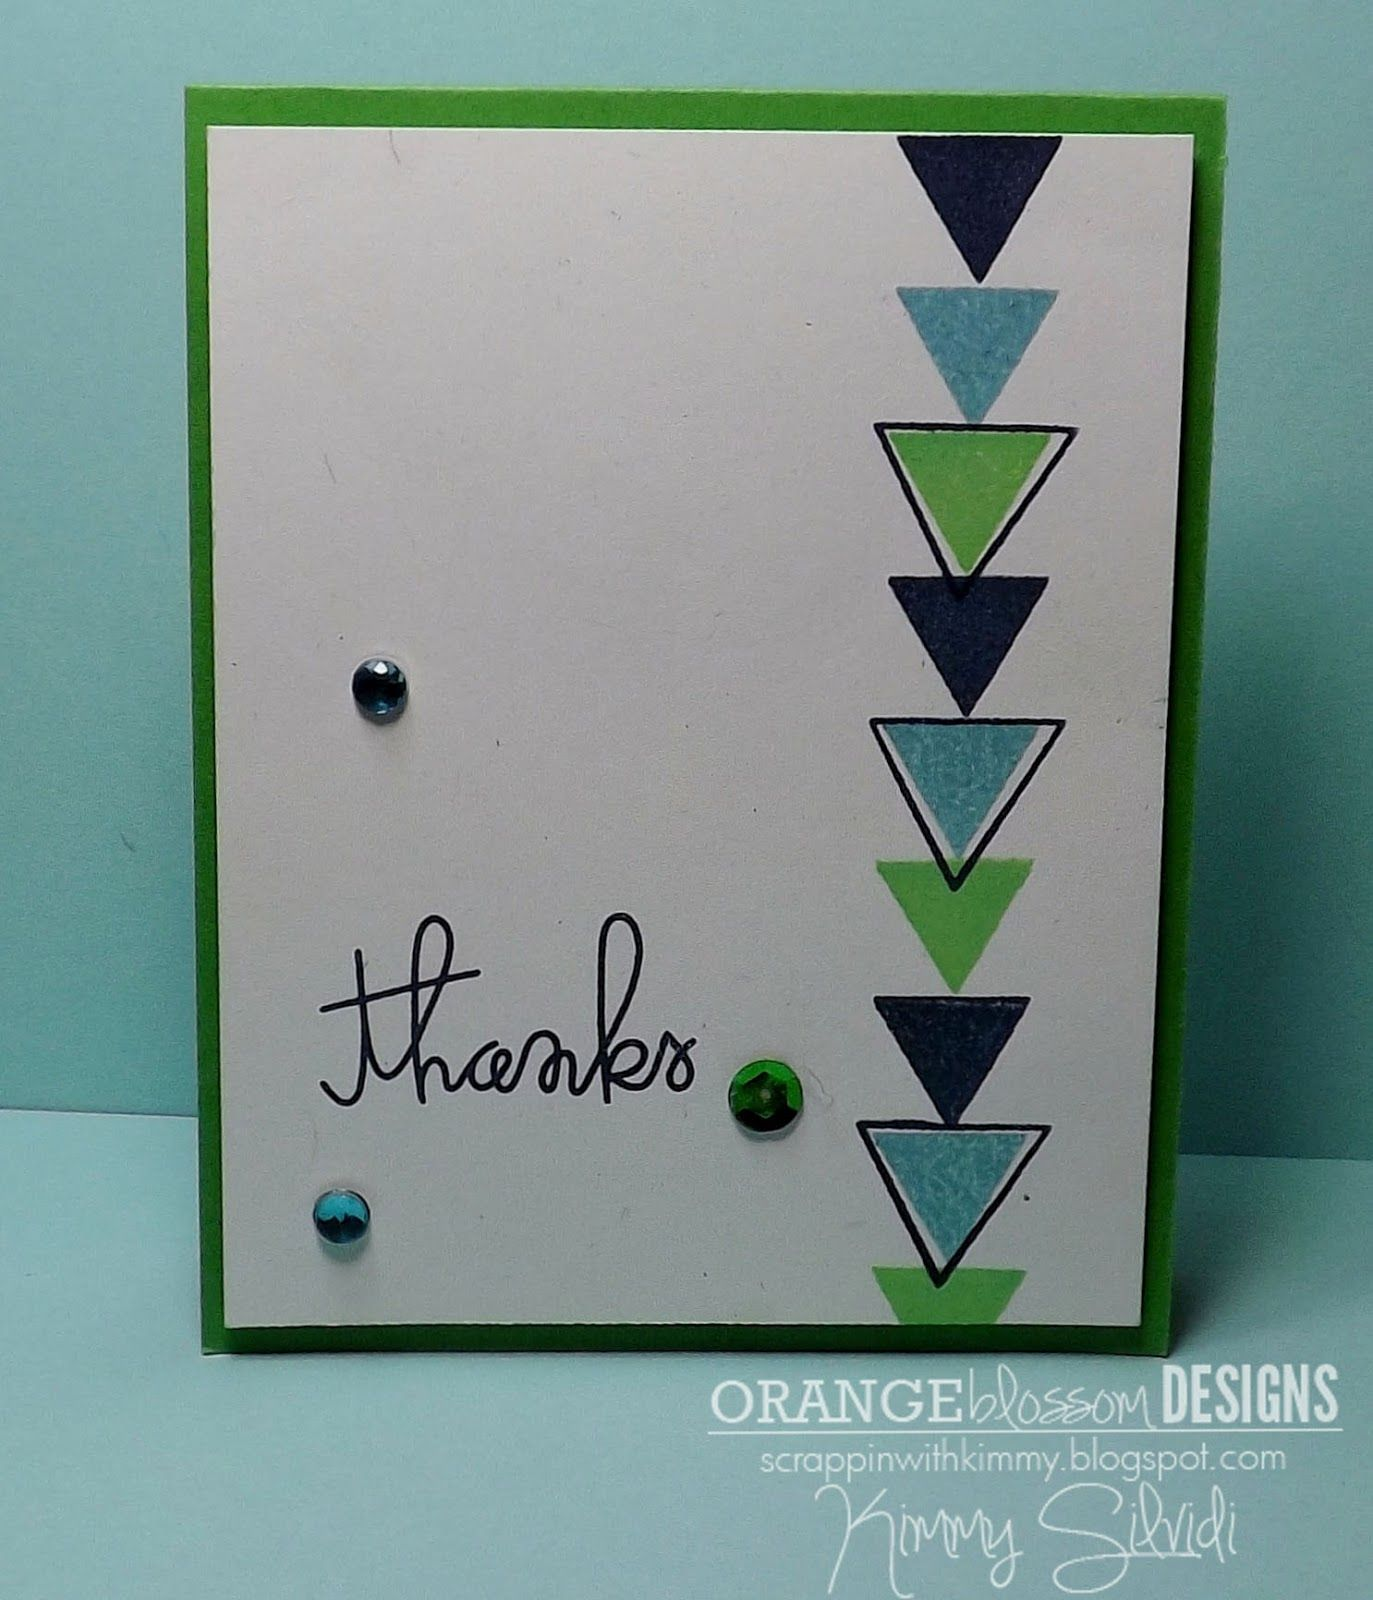 by Kimmy Silvidi, Orange Blossom Designs, using Paper Smooches stamps